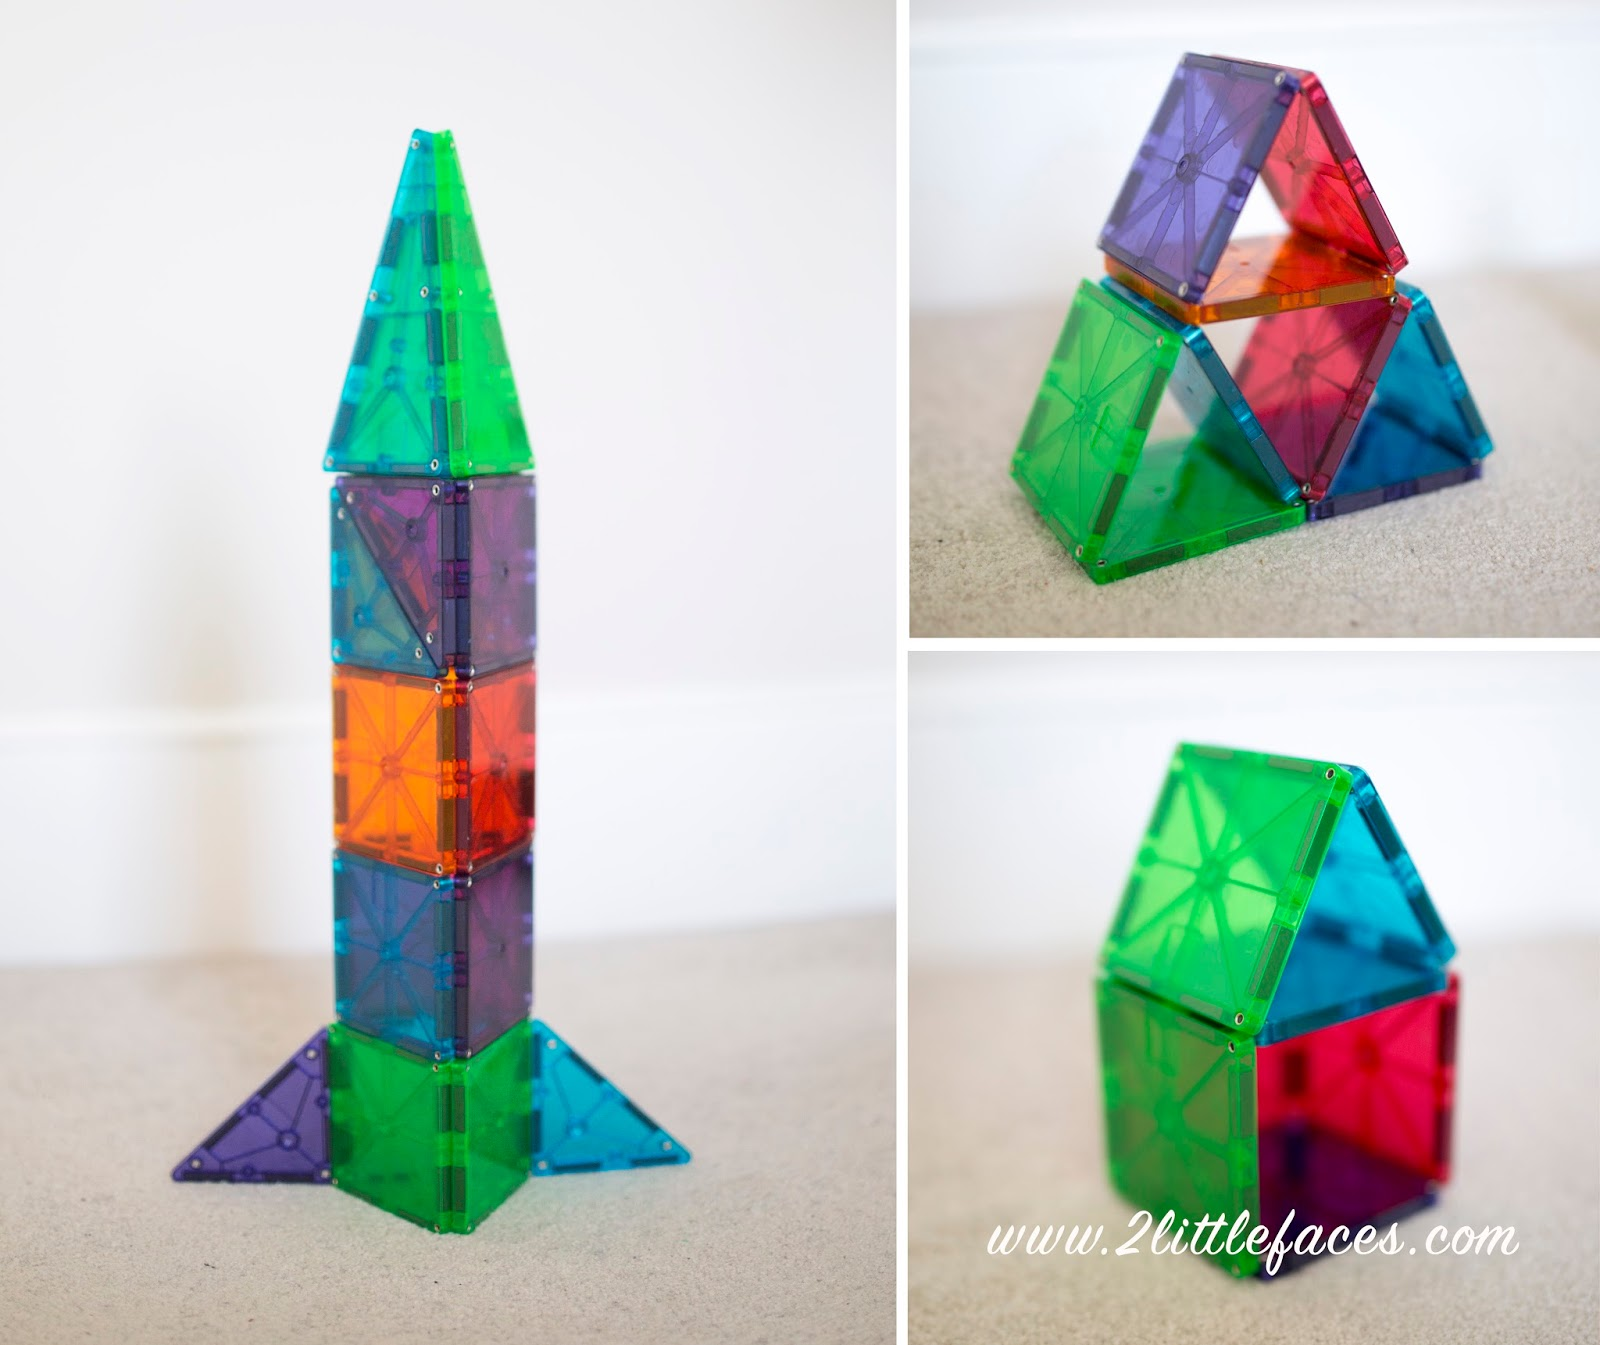 2 littlefaces magna tiles review